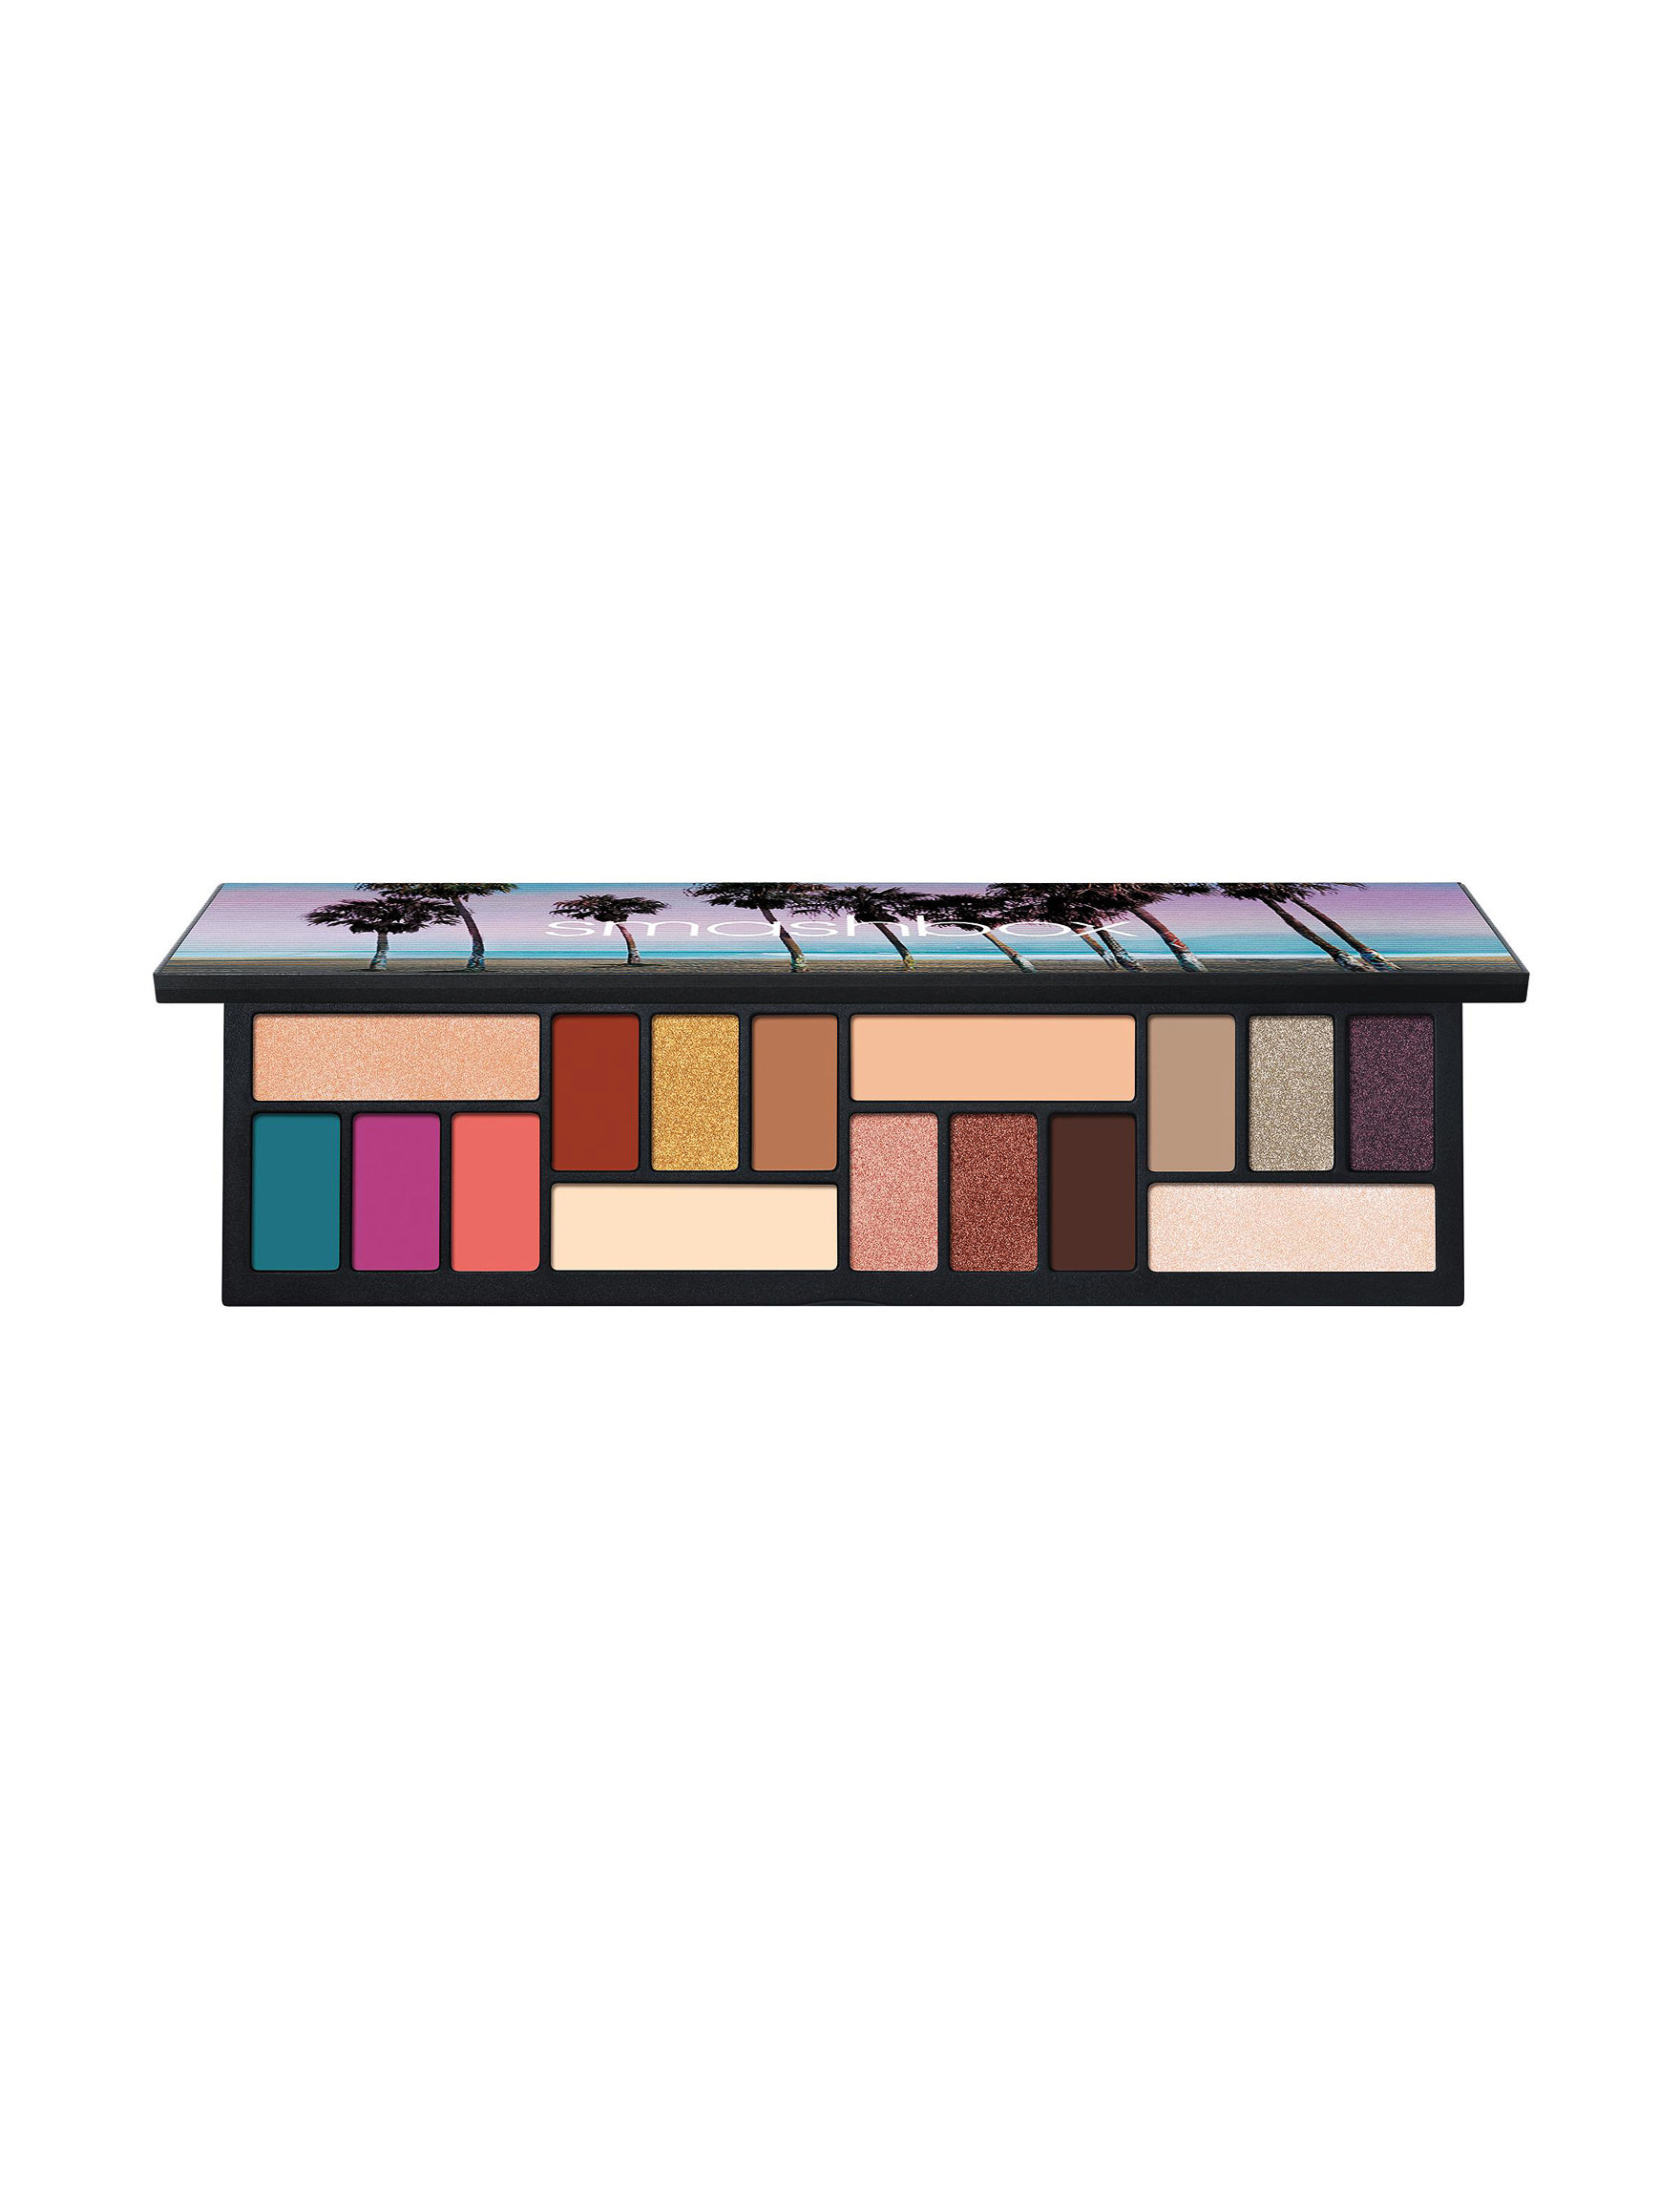 Smashbox Brown Multi Sets & Palettes Eye Liner Eye Shadow